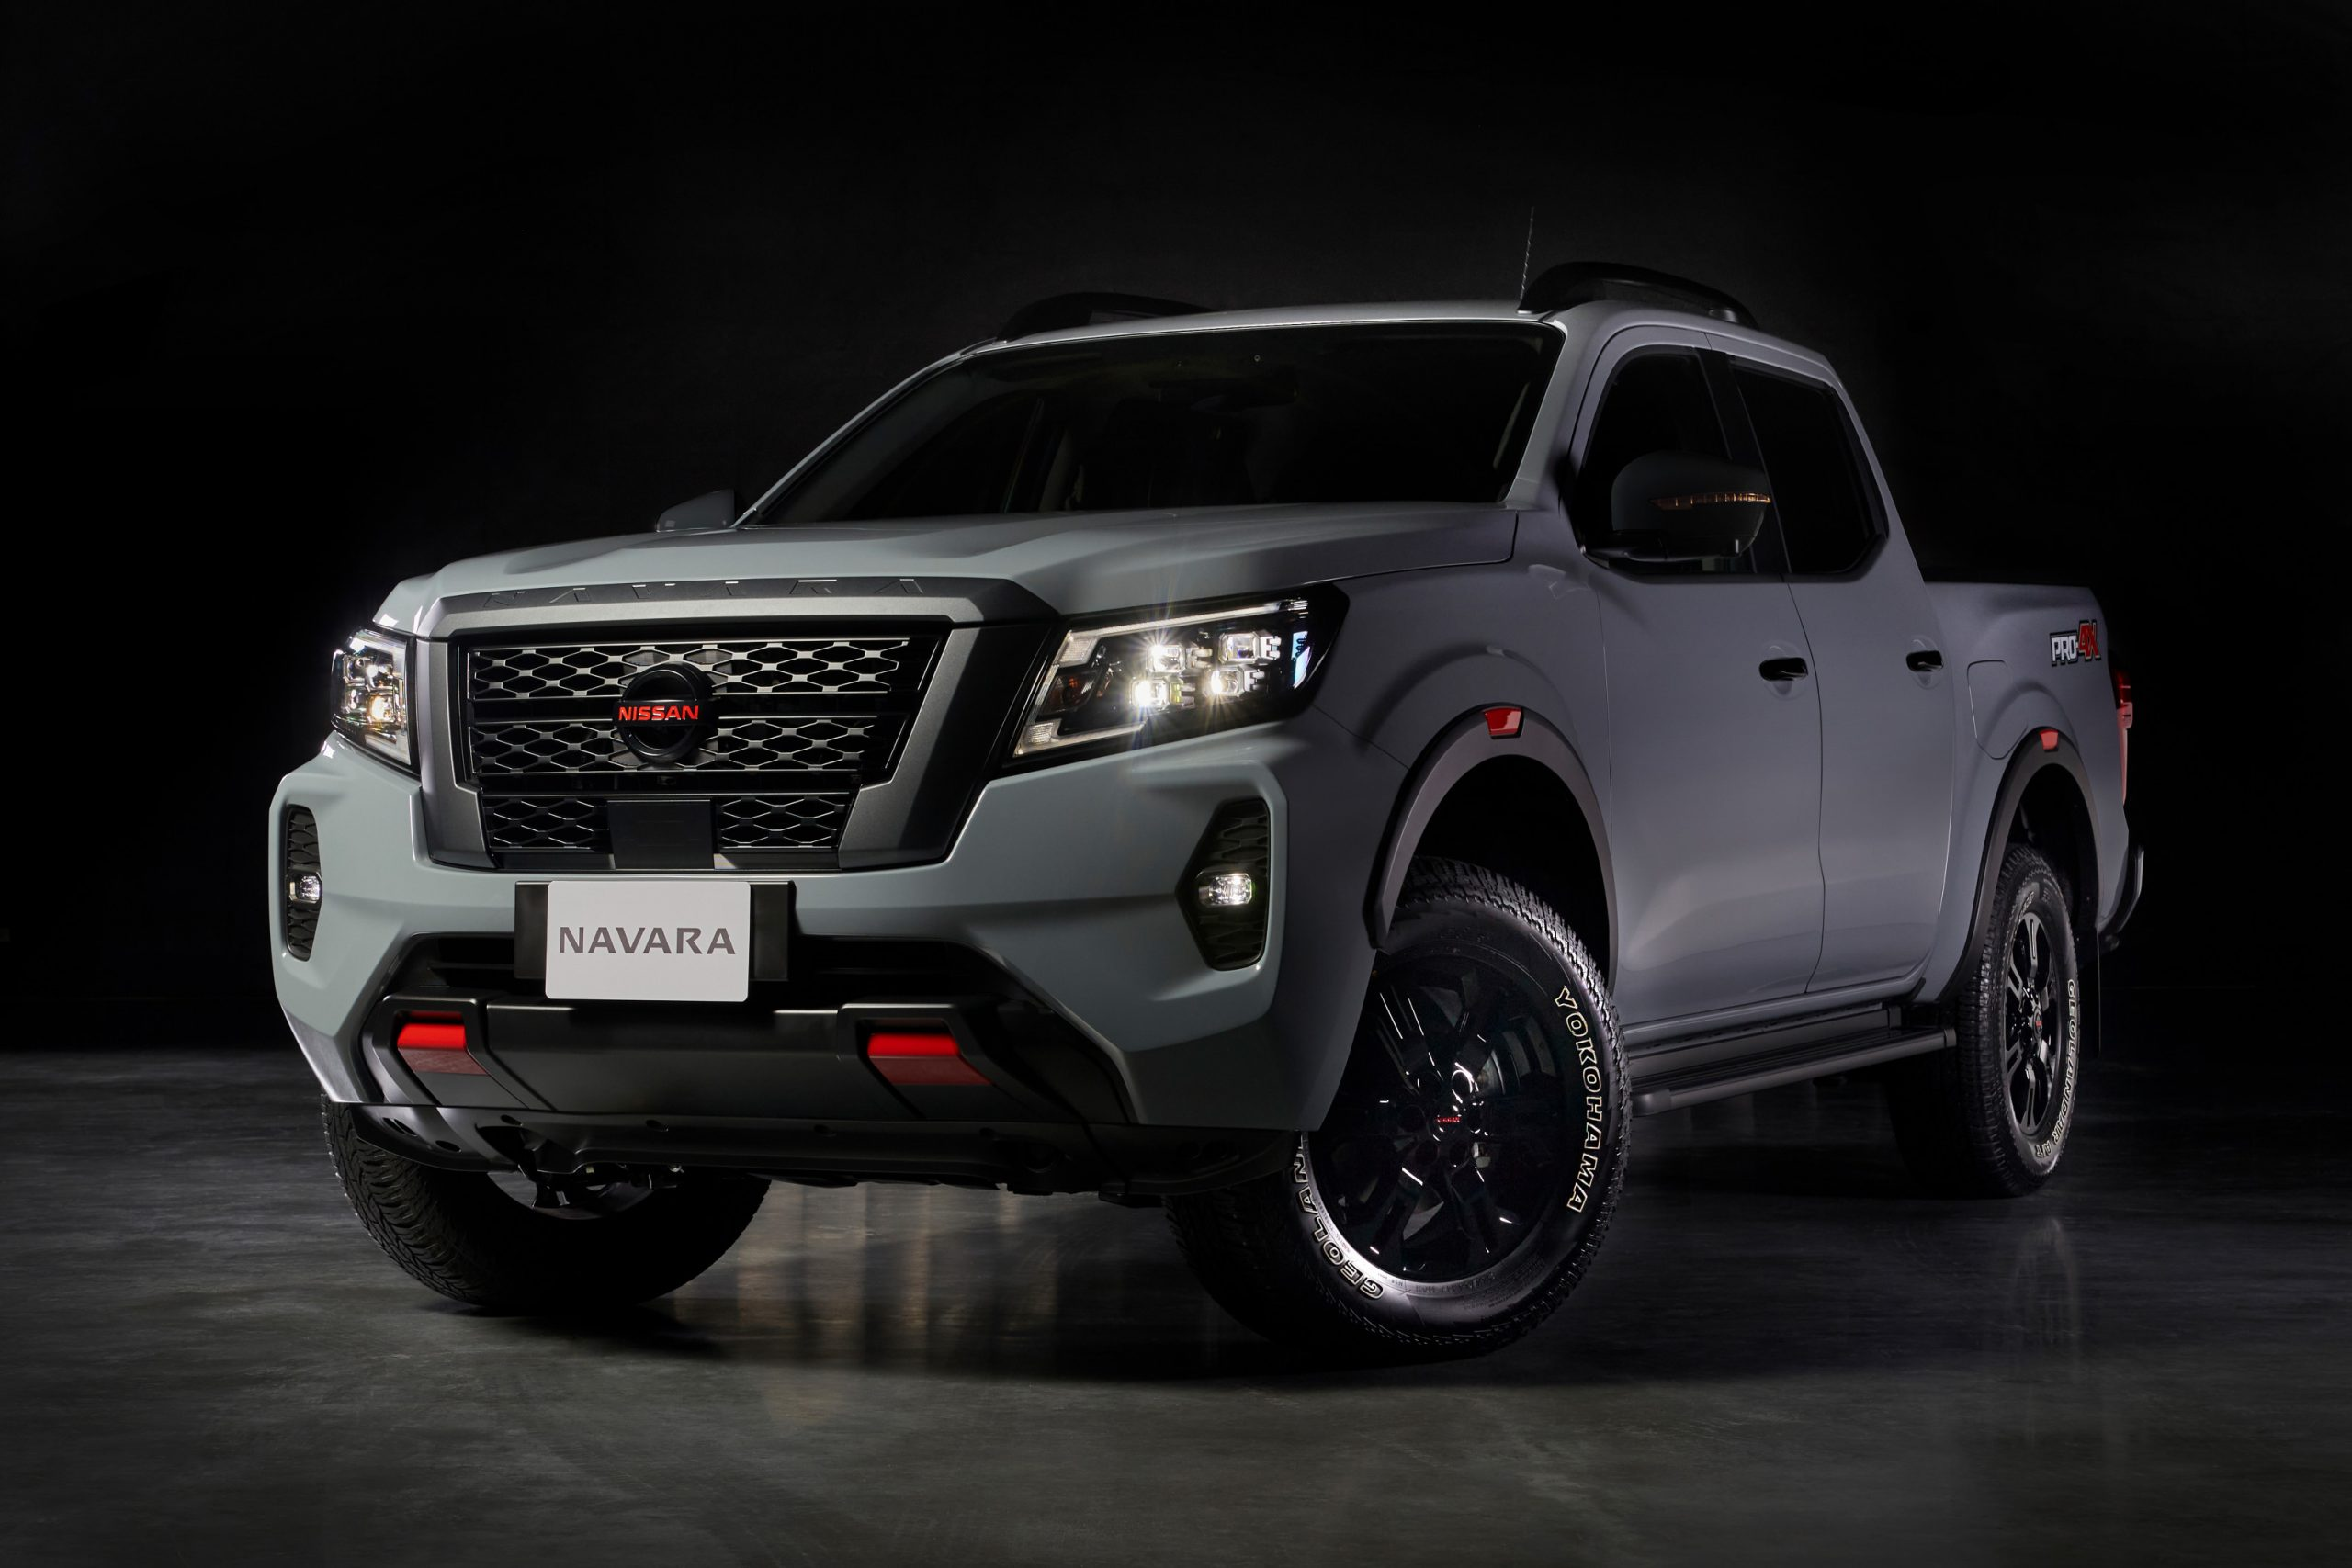 2021 Nissan Navara will offer first class comfort